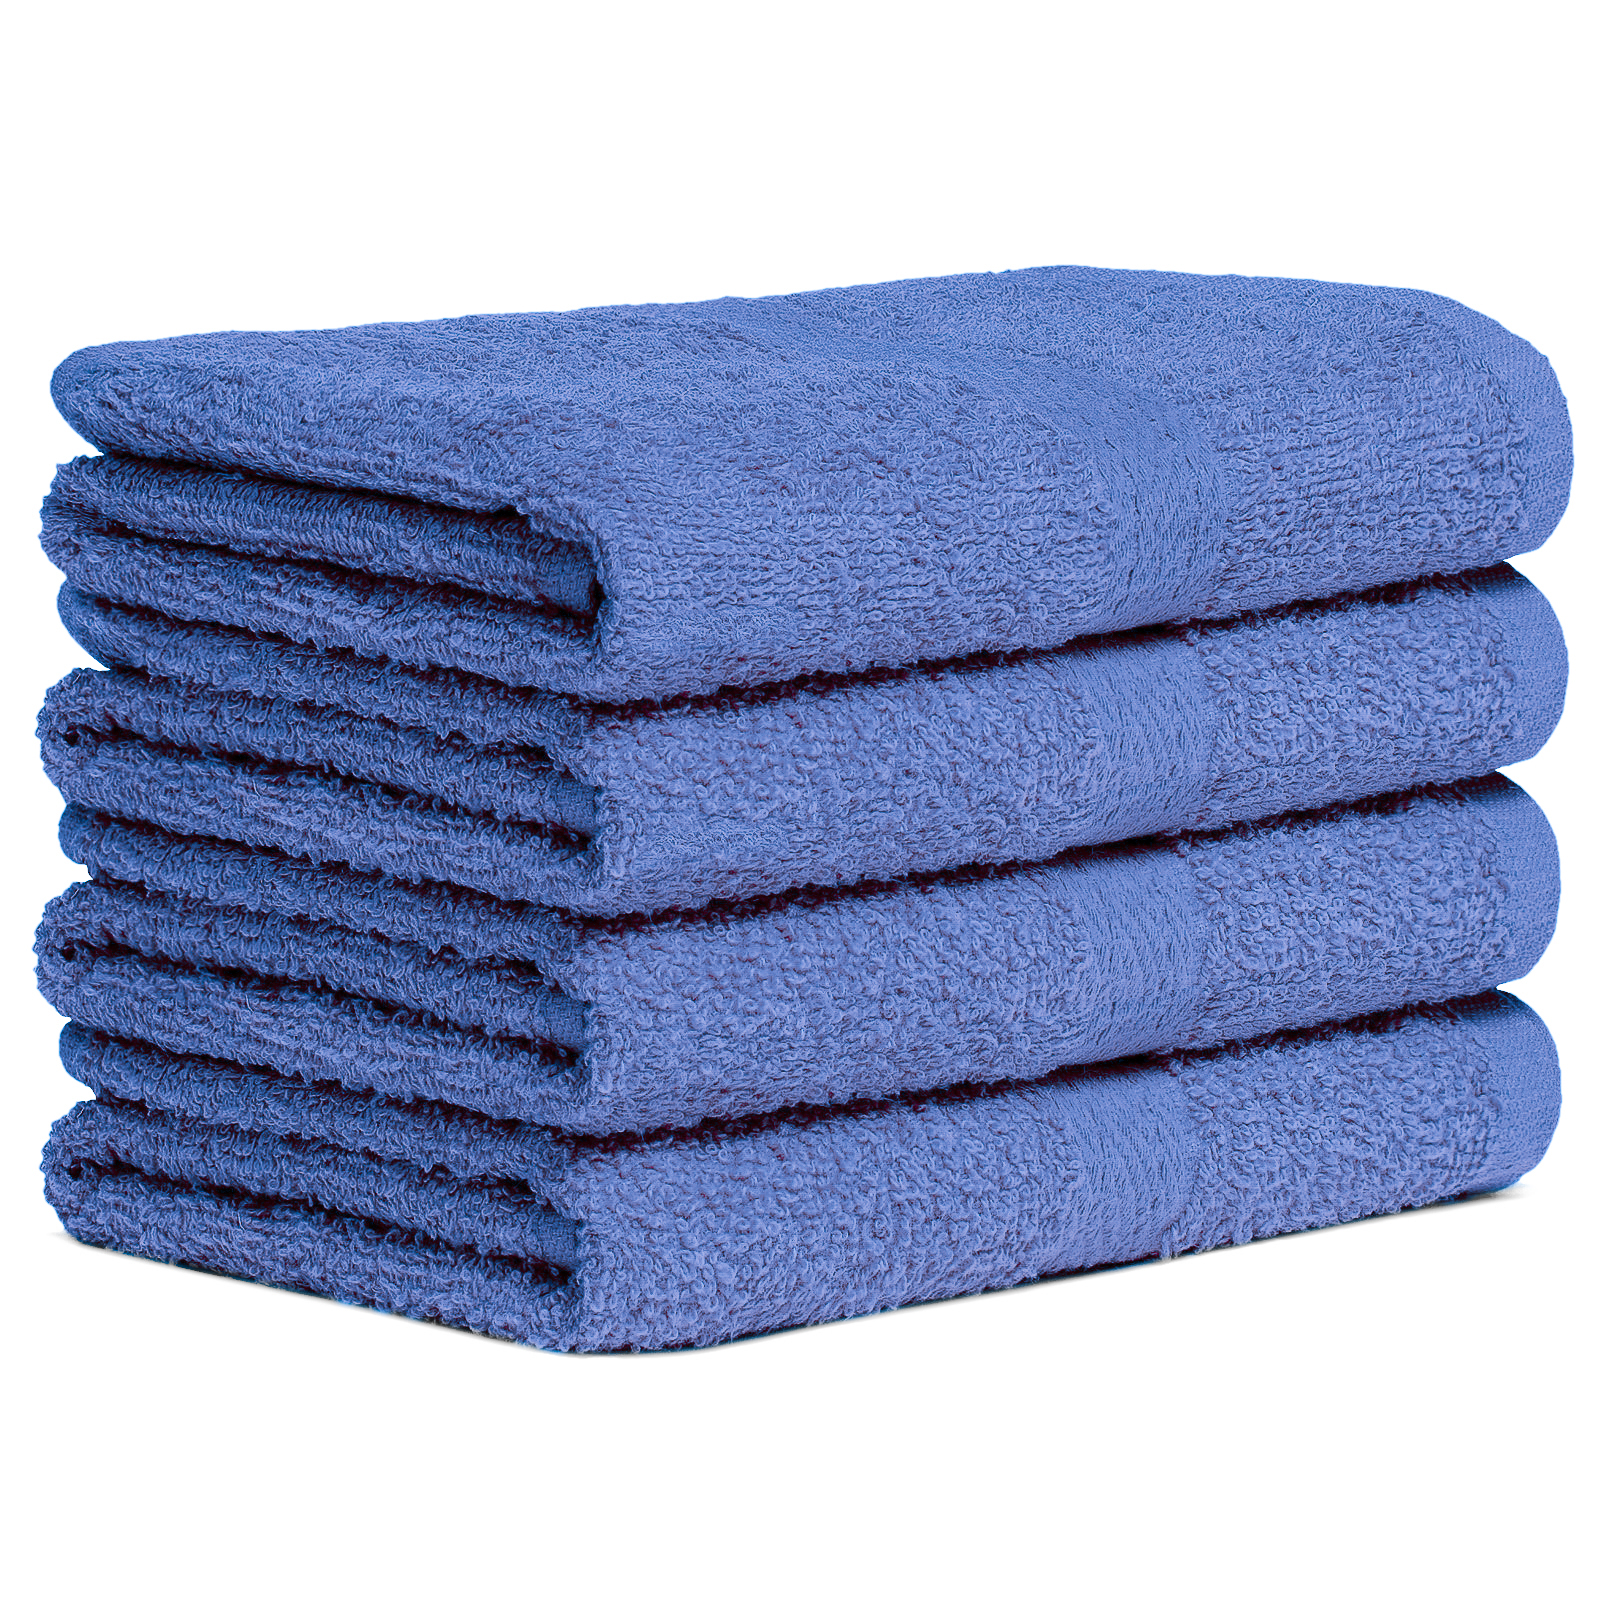 10 pcs guest towels 30 x 50 cm hand towel set guests towel 100 cotton 500 g ebay. Black Bedroom Furniture Sets. Home Design Ideas